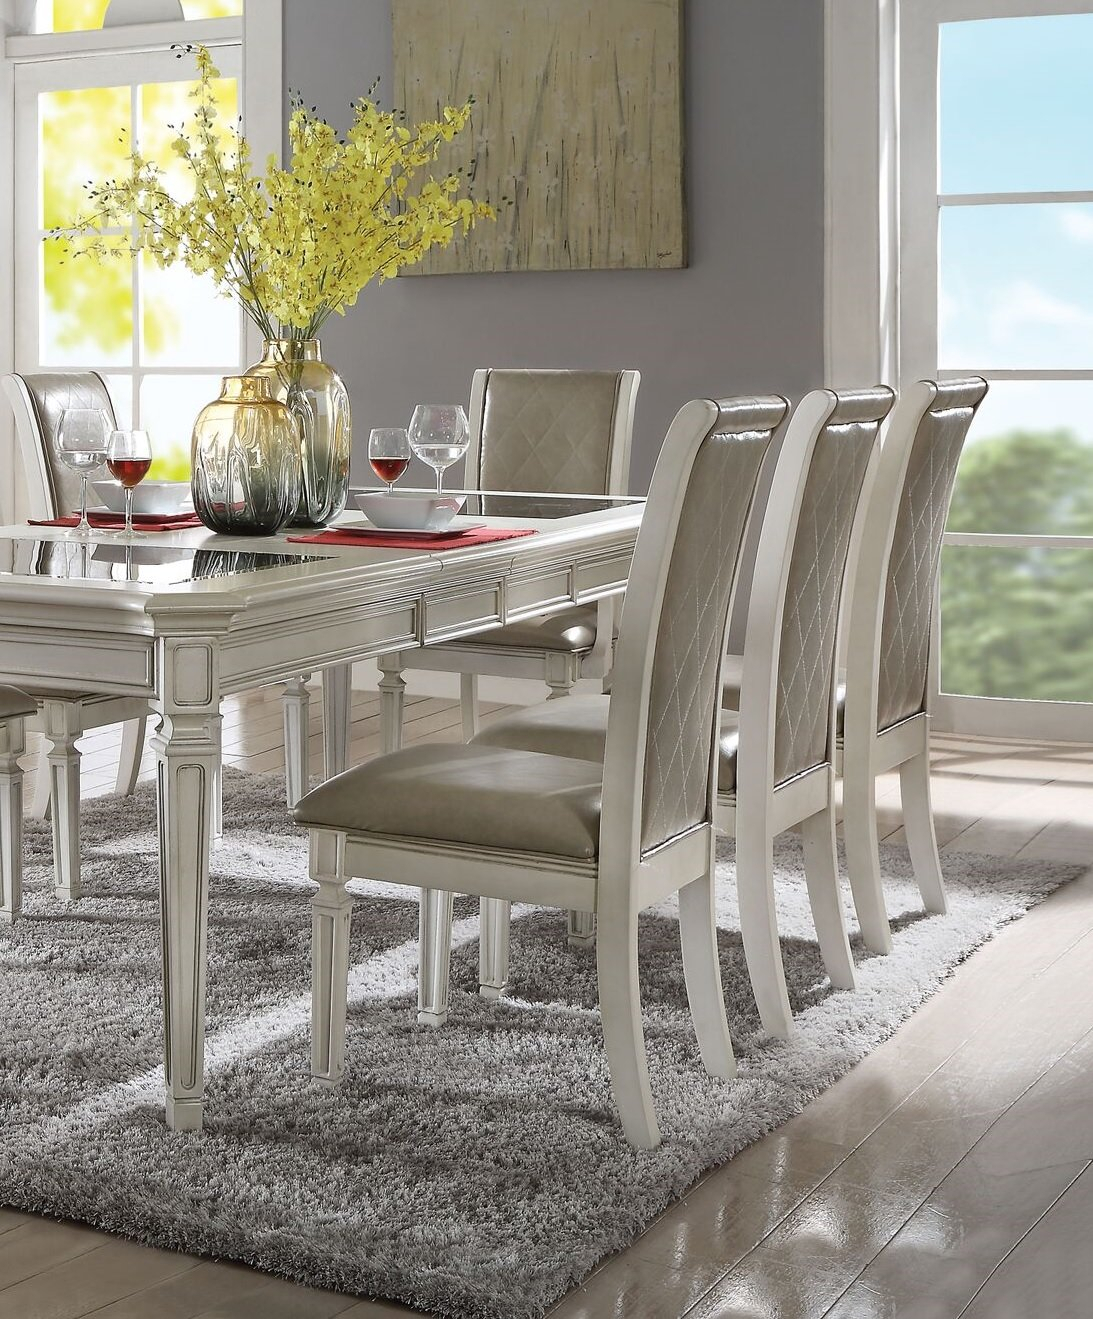 Lamotte Upholstered Dining Chair Intended For Newest Lamotte 5 Piece Dining Sets (Image 12 of 20)